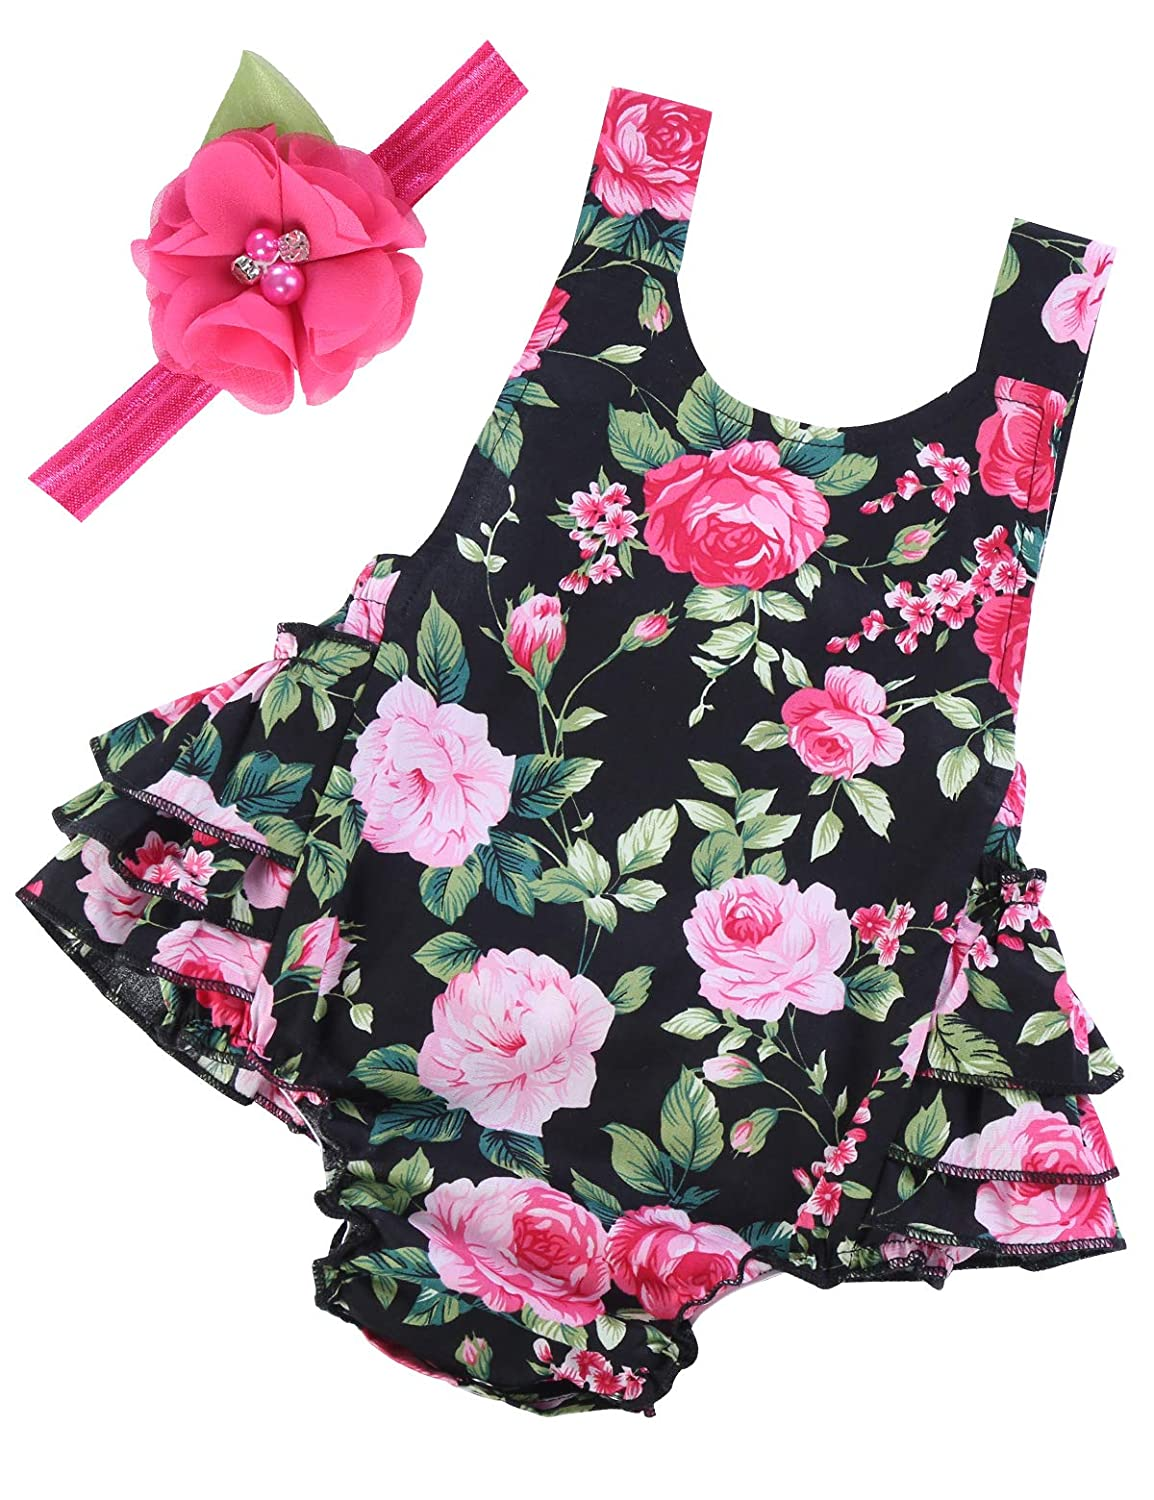 e3a0d4358 Amazon.com: PrinceSasa Baby Girl's Floral Print Ruffles Romper Summer  Clothes with Headband: Clothing